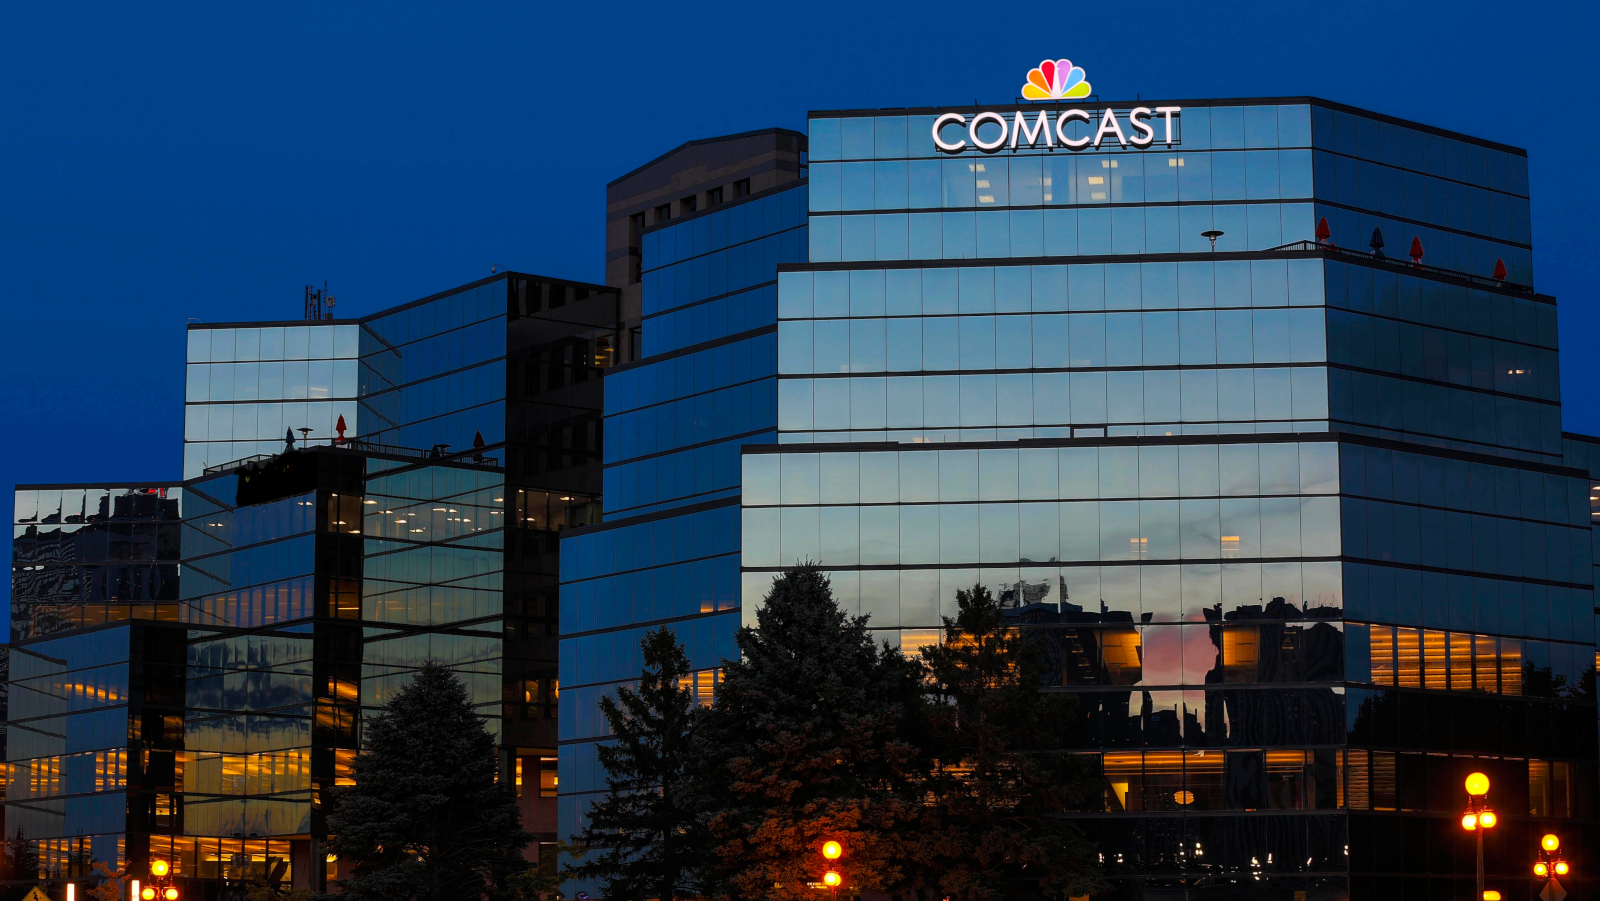 Exterior view of the Comcast Twin Cities Regional office at dusk.